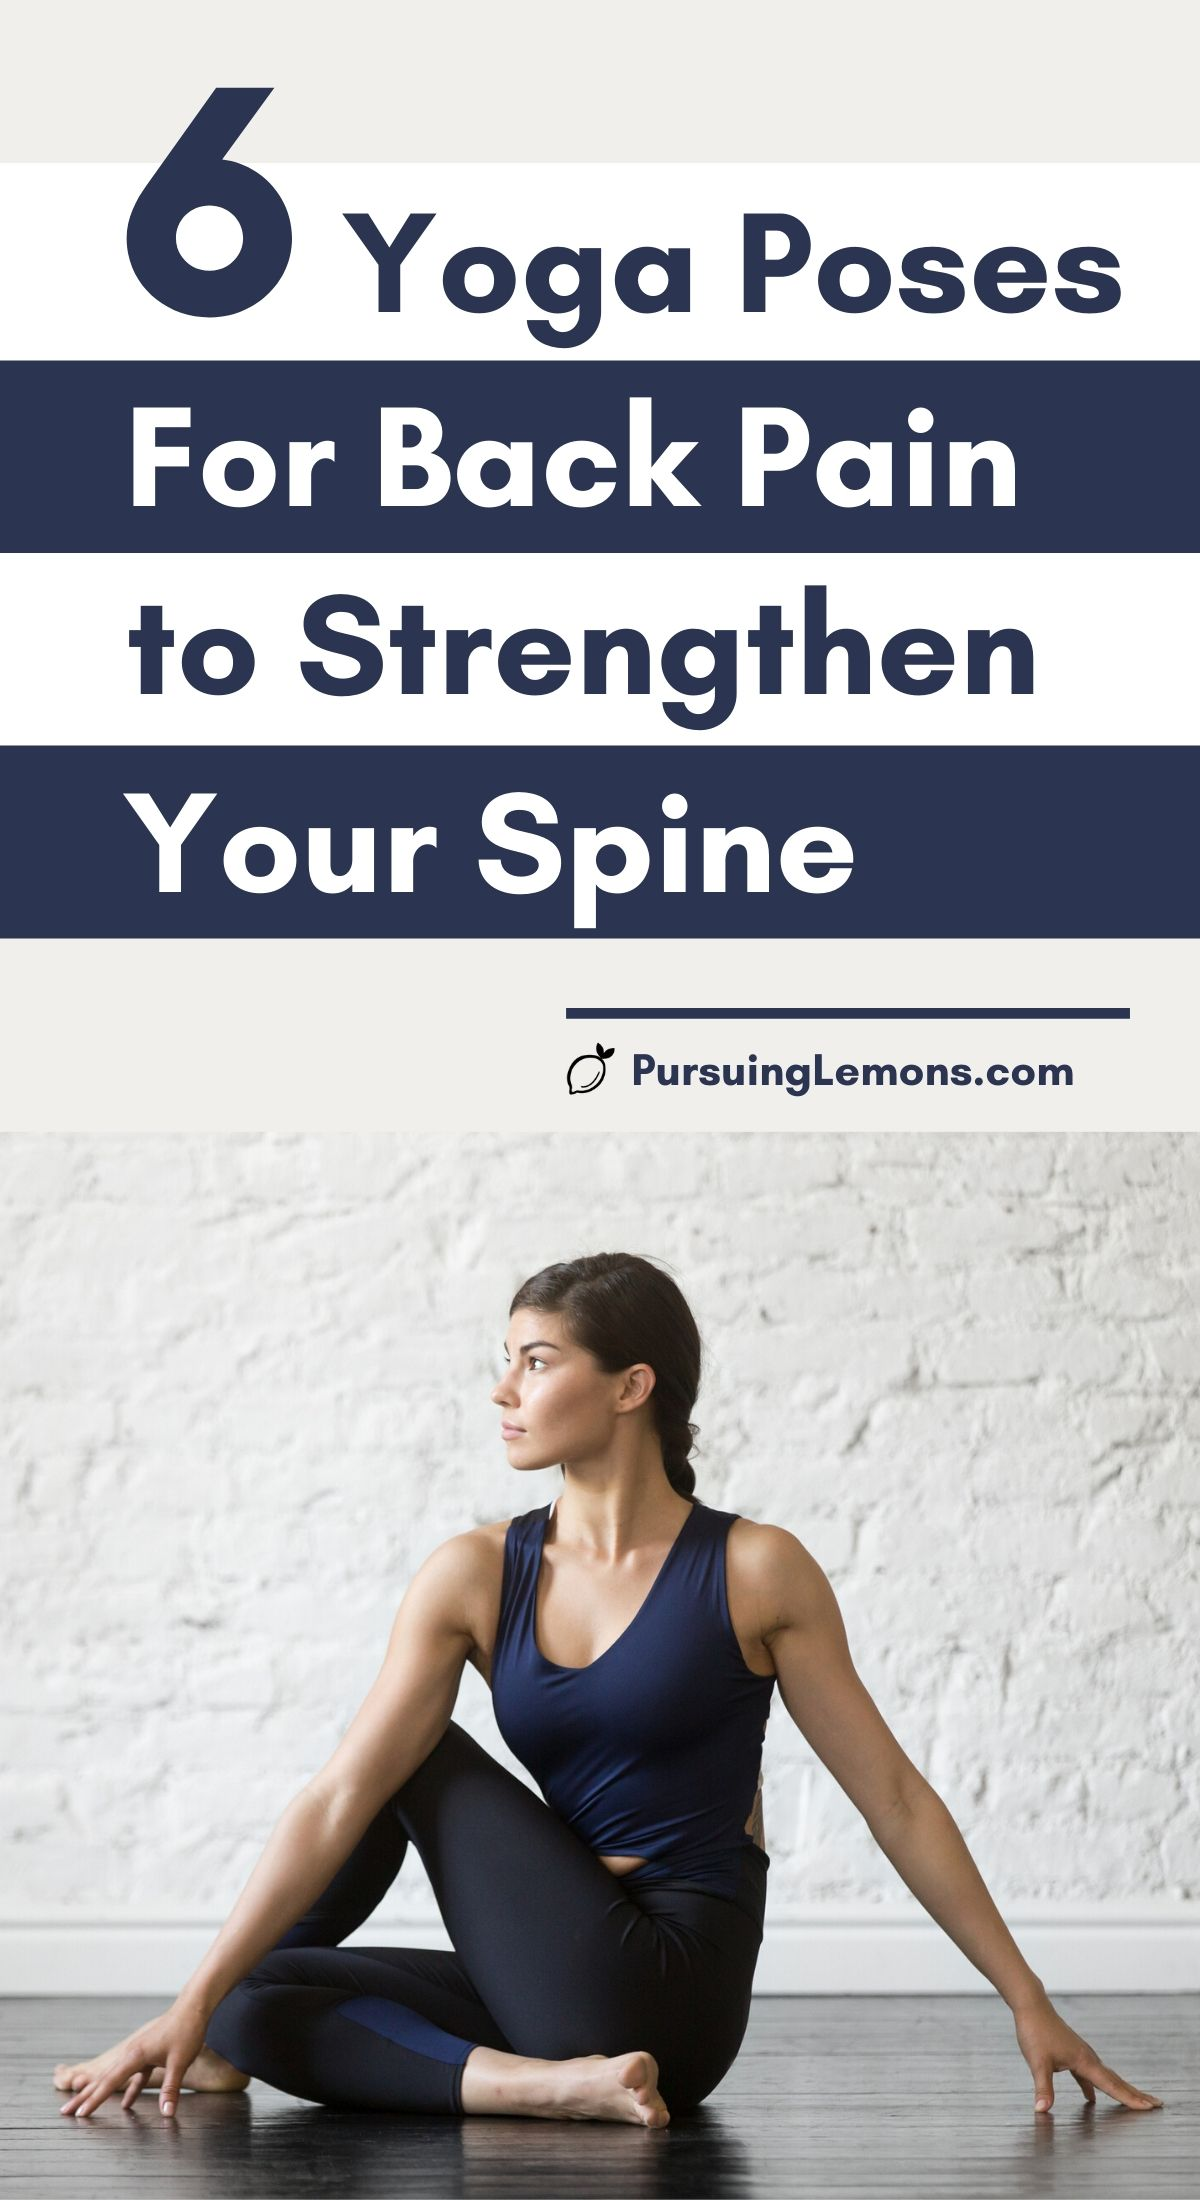 Yoga for Back Pain: 6 Poses to Strengthen Your Spine   Feeling constant upper and lower back pain? Start practicing this yoga sequence to relieve your back pain. These 6 yoga poses will help you strengthen and increase flexibility in your spine to avoid back pains in the future. #yogaposes #yogaforbackpain #yogastretches #yoga